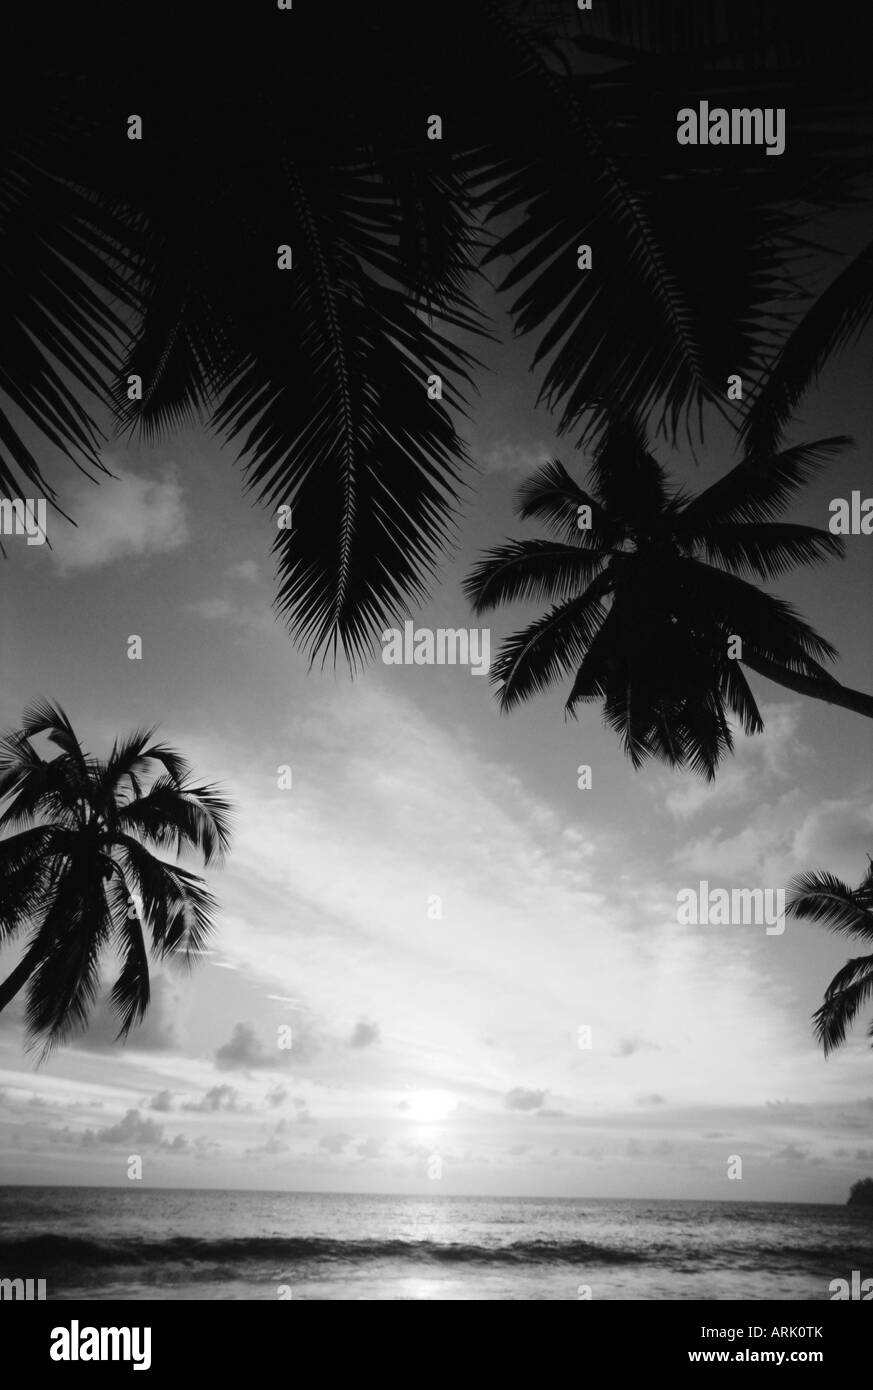 Silhouette of palm trees, Seychelles - Stock Image